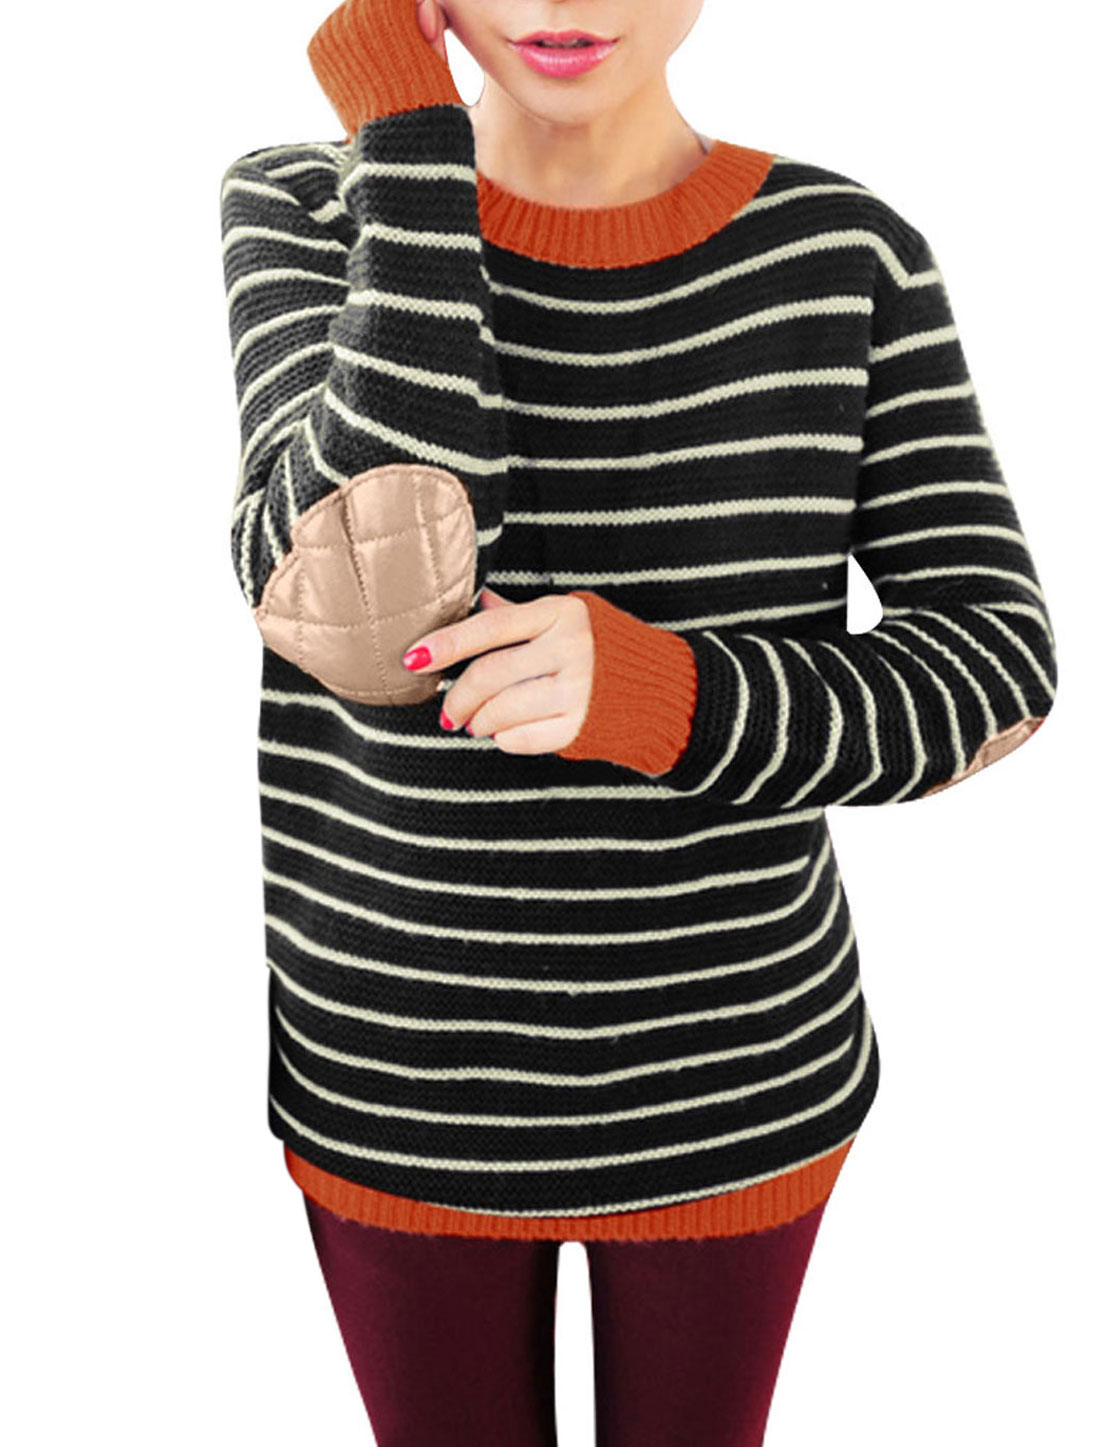 Women Long Sleeves Crew Neck Elbow Patch Striped Sweater Black M